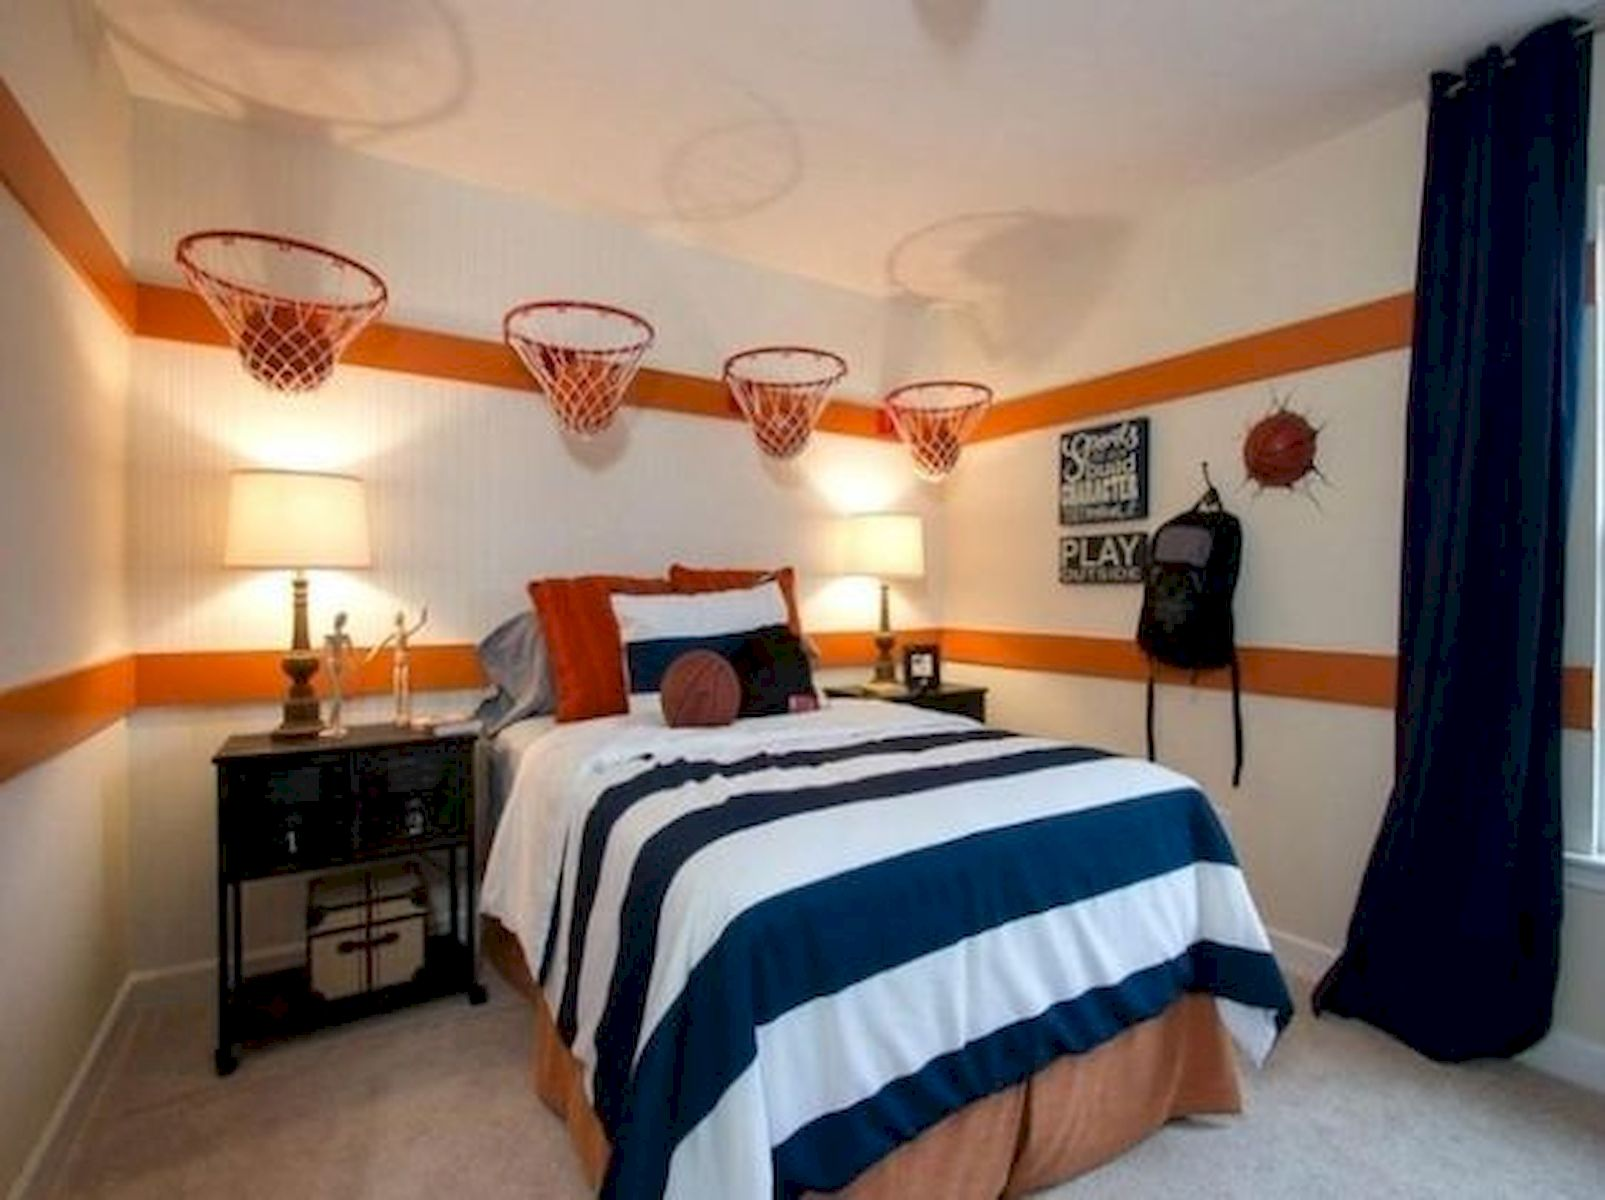 45 Cool Boys Bedroom Ideas to Try at Home (6)